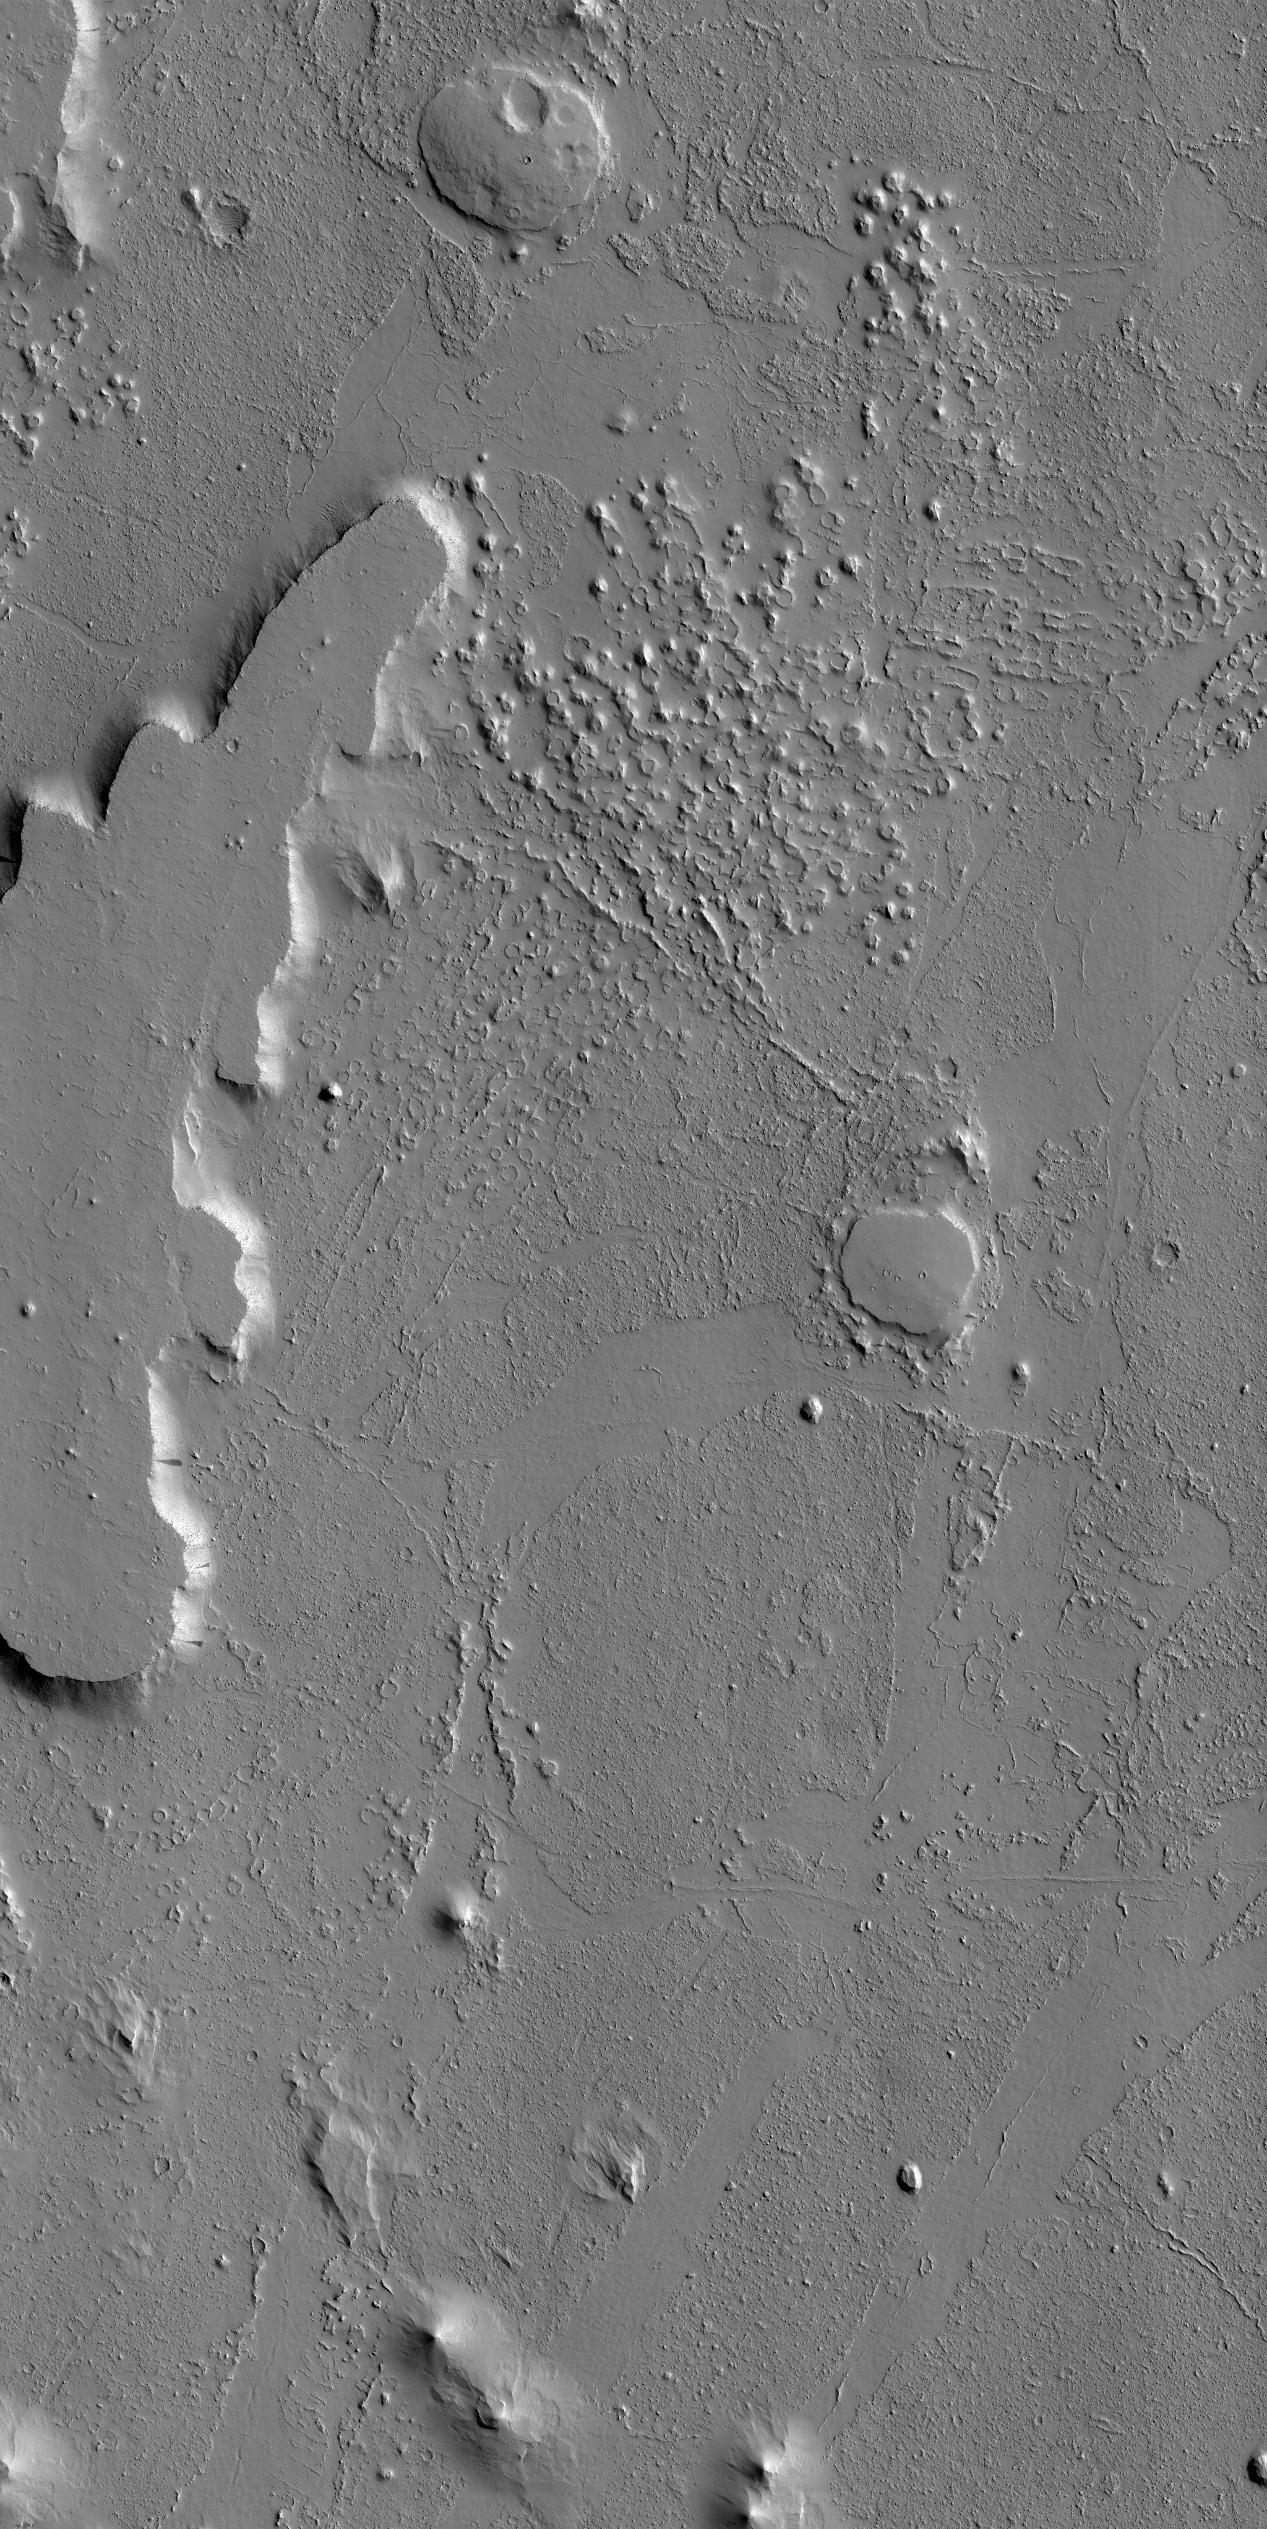 Ring and Cone Structures and Platy-Ridged Terrain in Amazonis Planitia